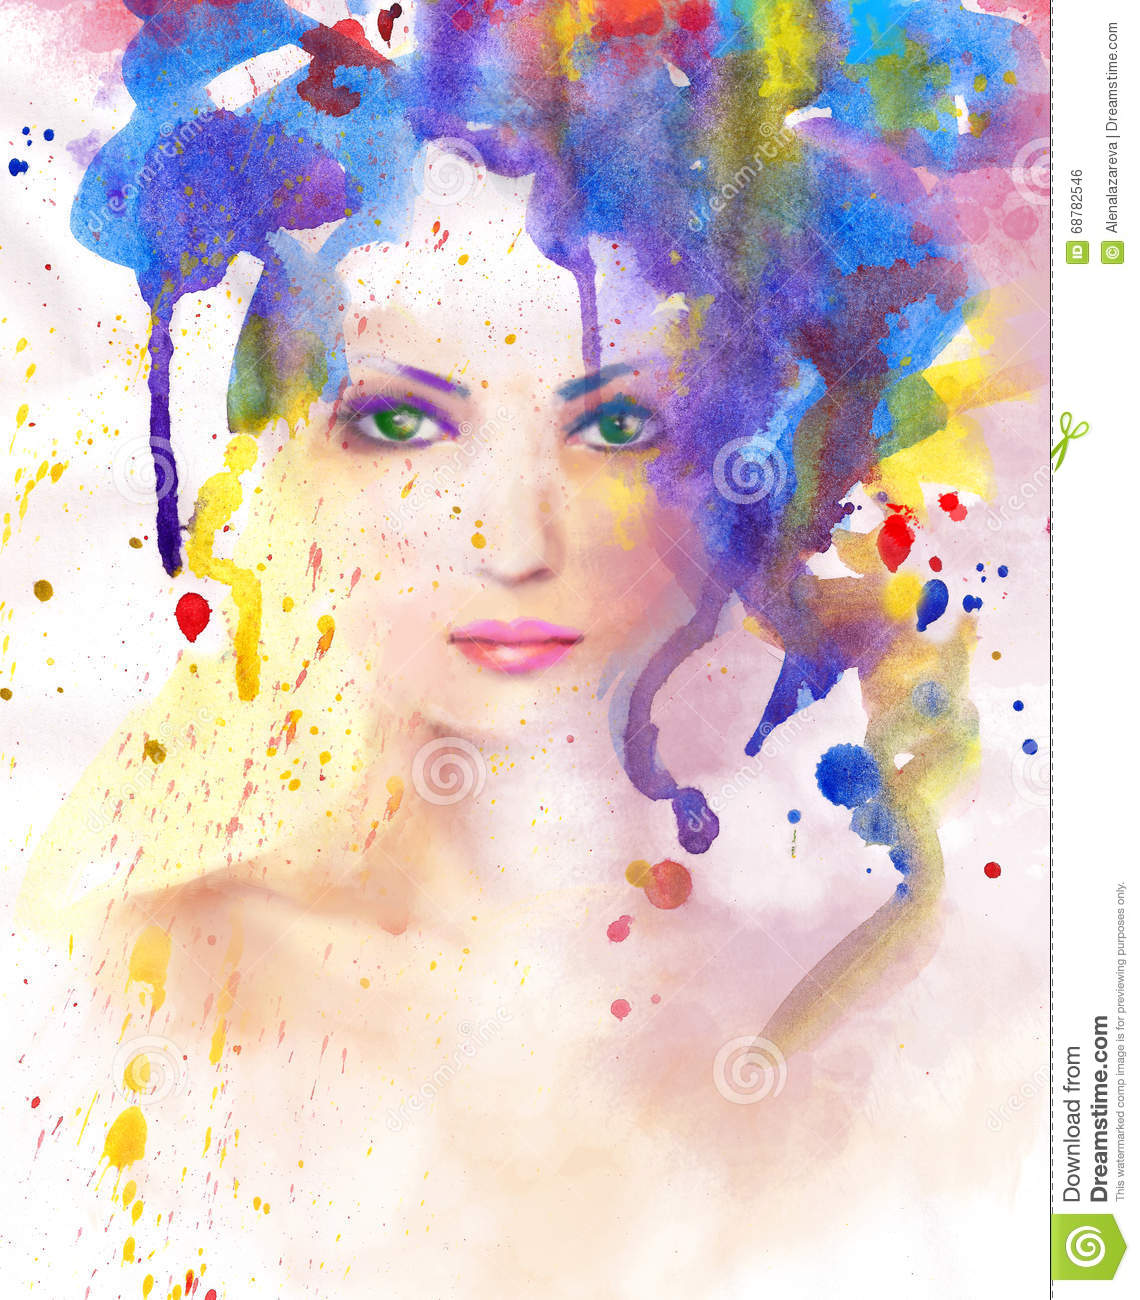 spring woman abstract portrait beautiful watercolor hand painted drawing stock illustration. Black Bedroom Furniture Sets. Home Design Ideas